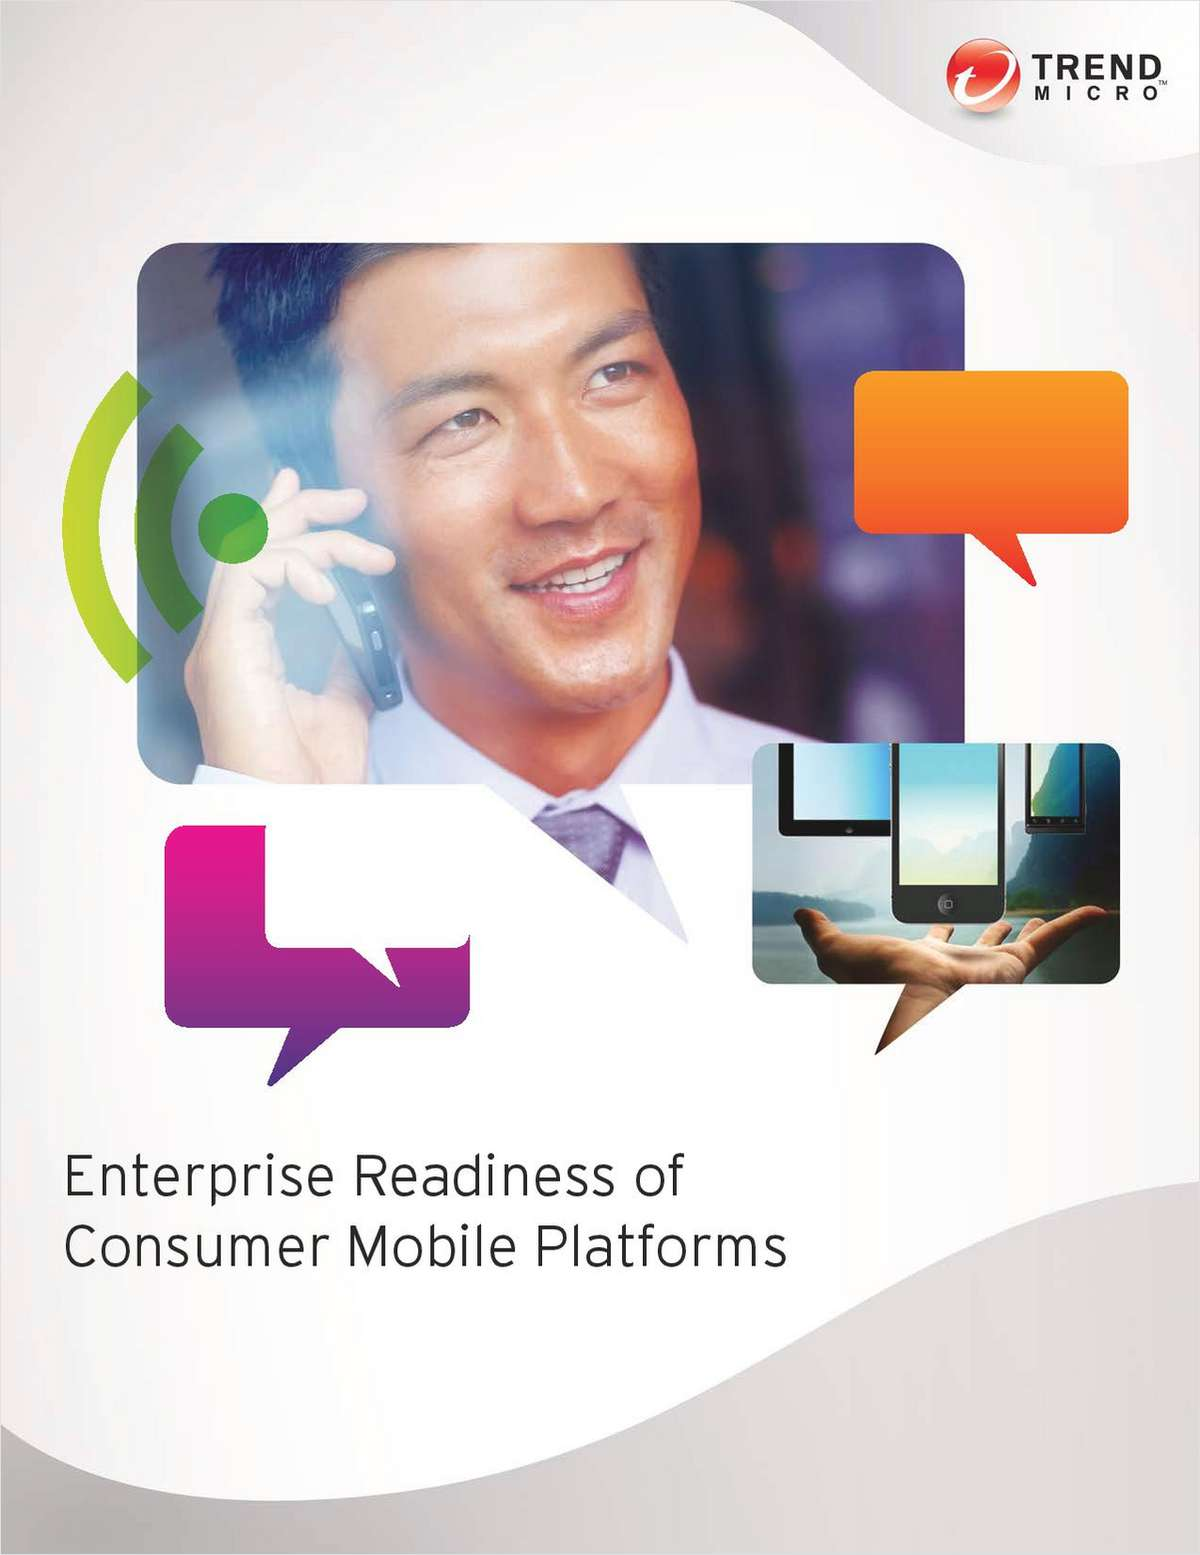 Enterprise Readiness of Consumer Mobile Platforms